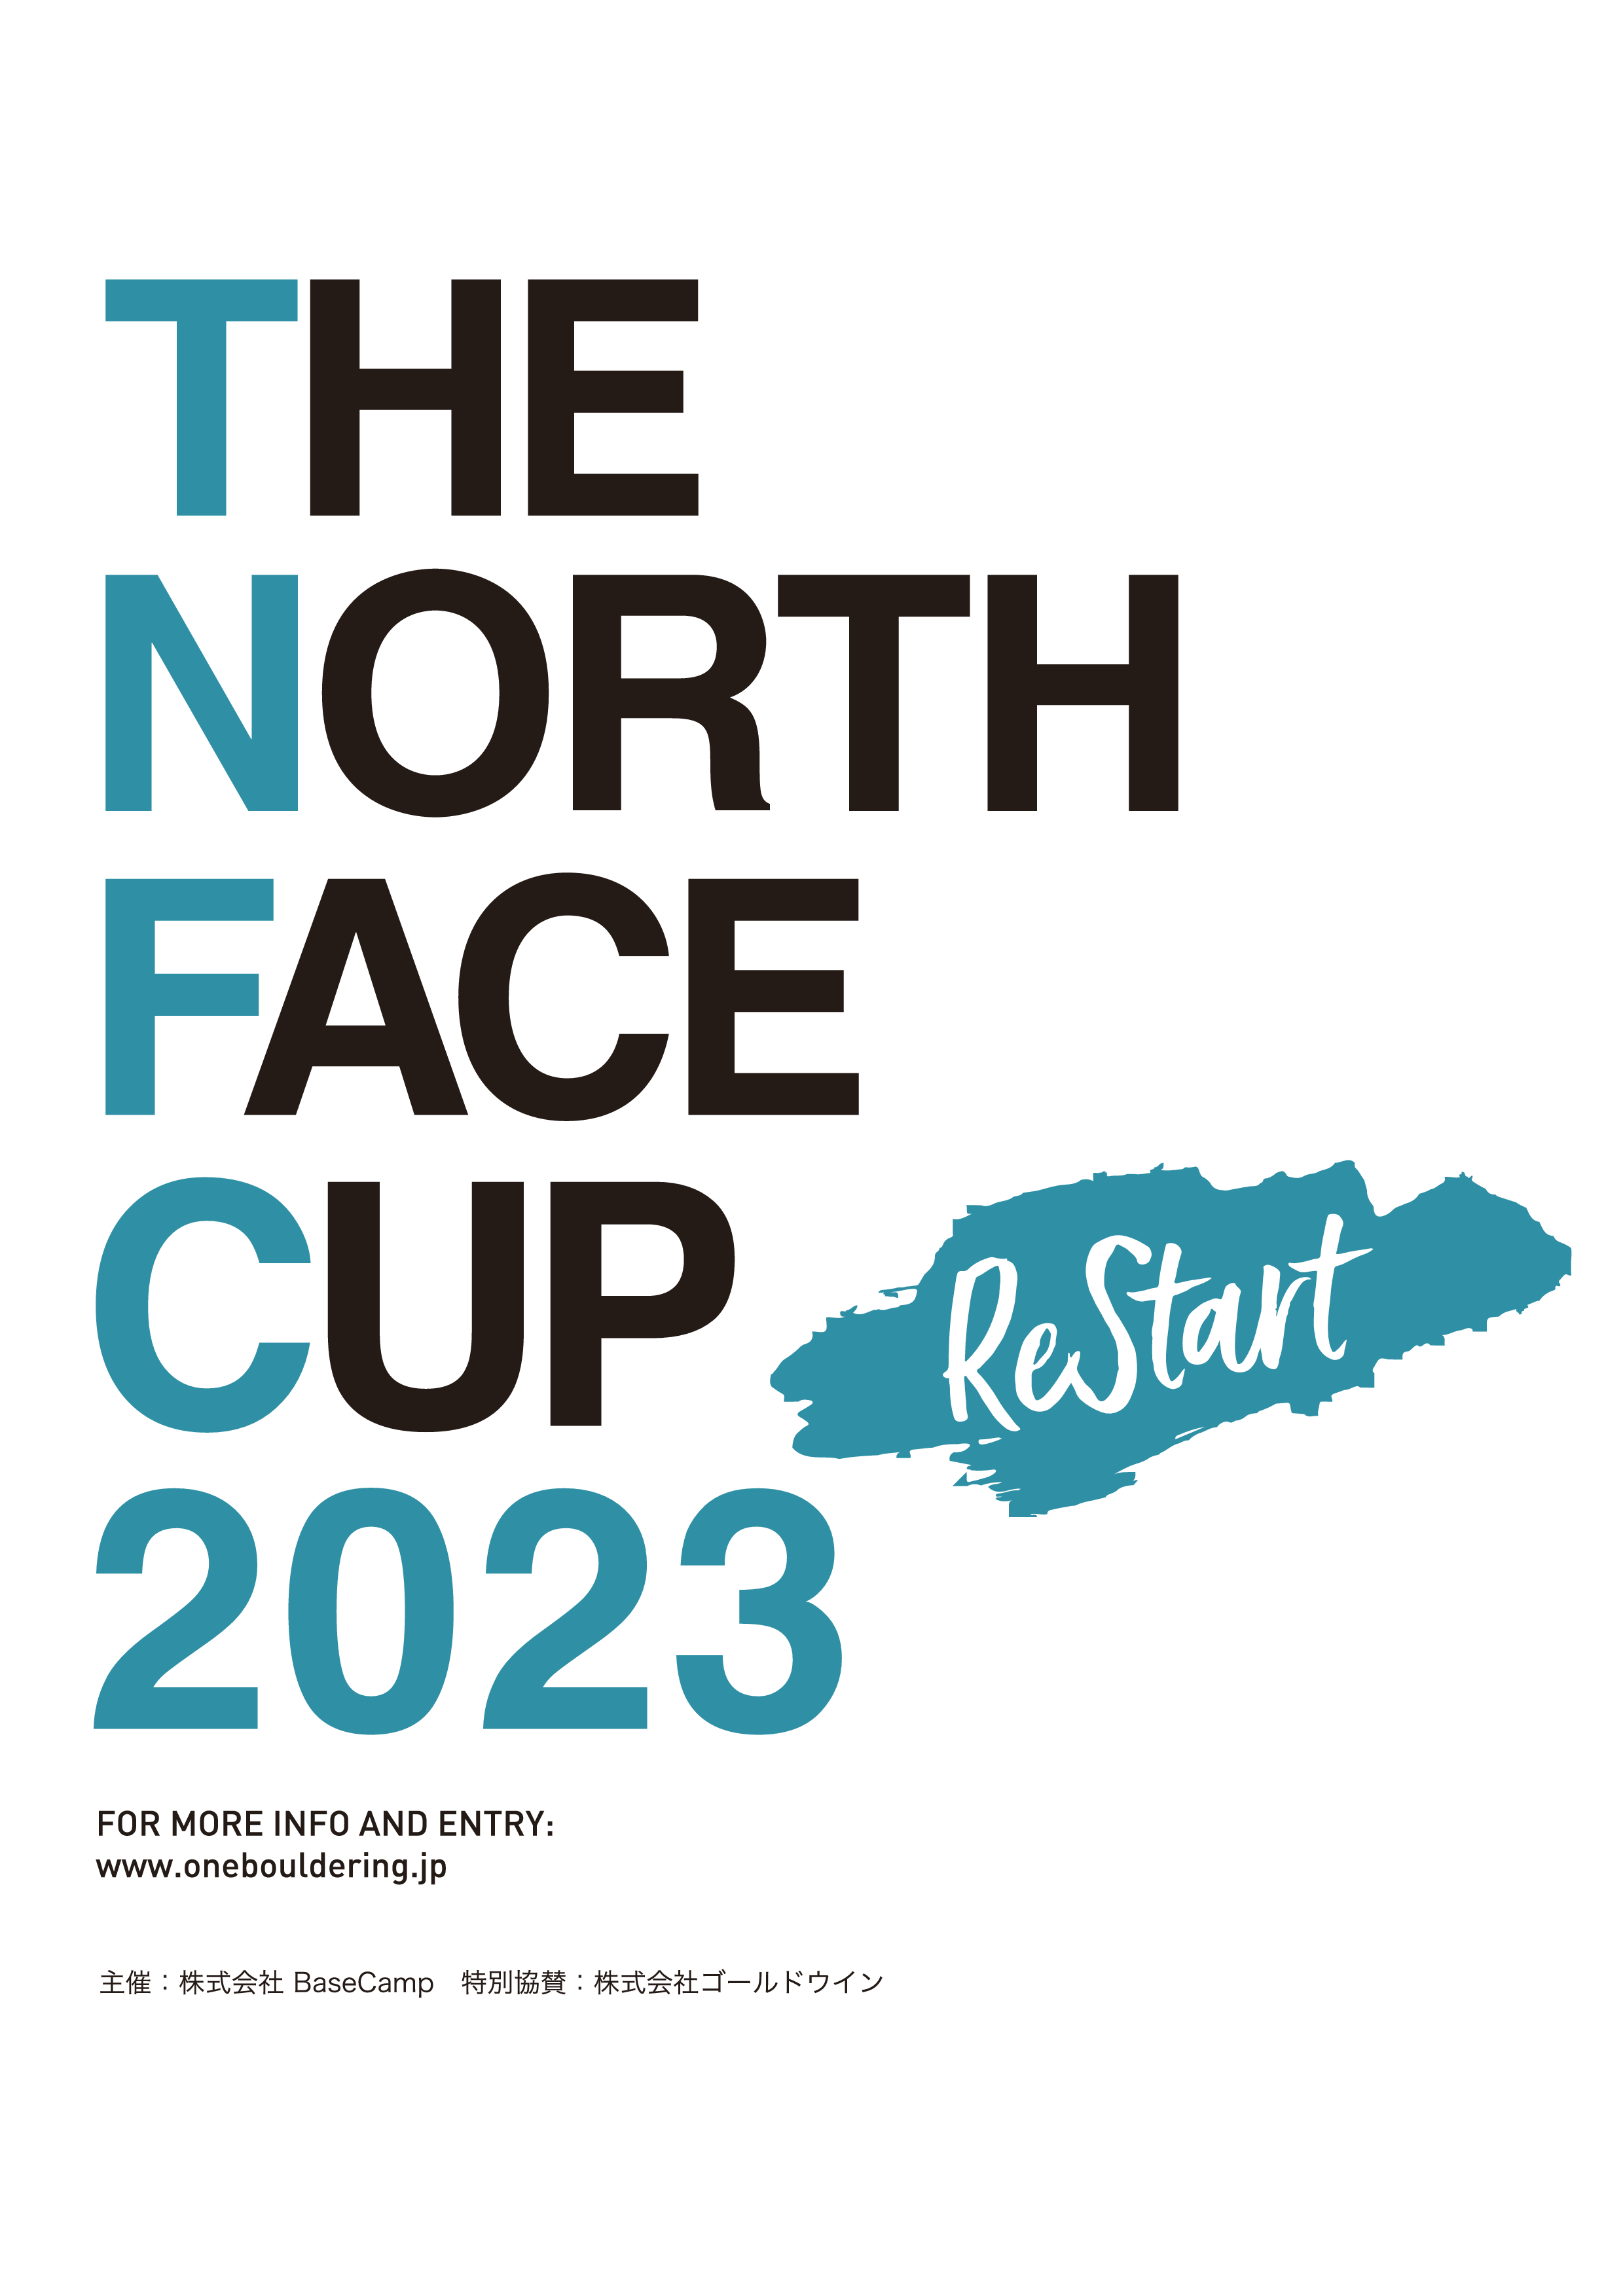 THE NORTH FACE CUP 2023  ReStart